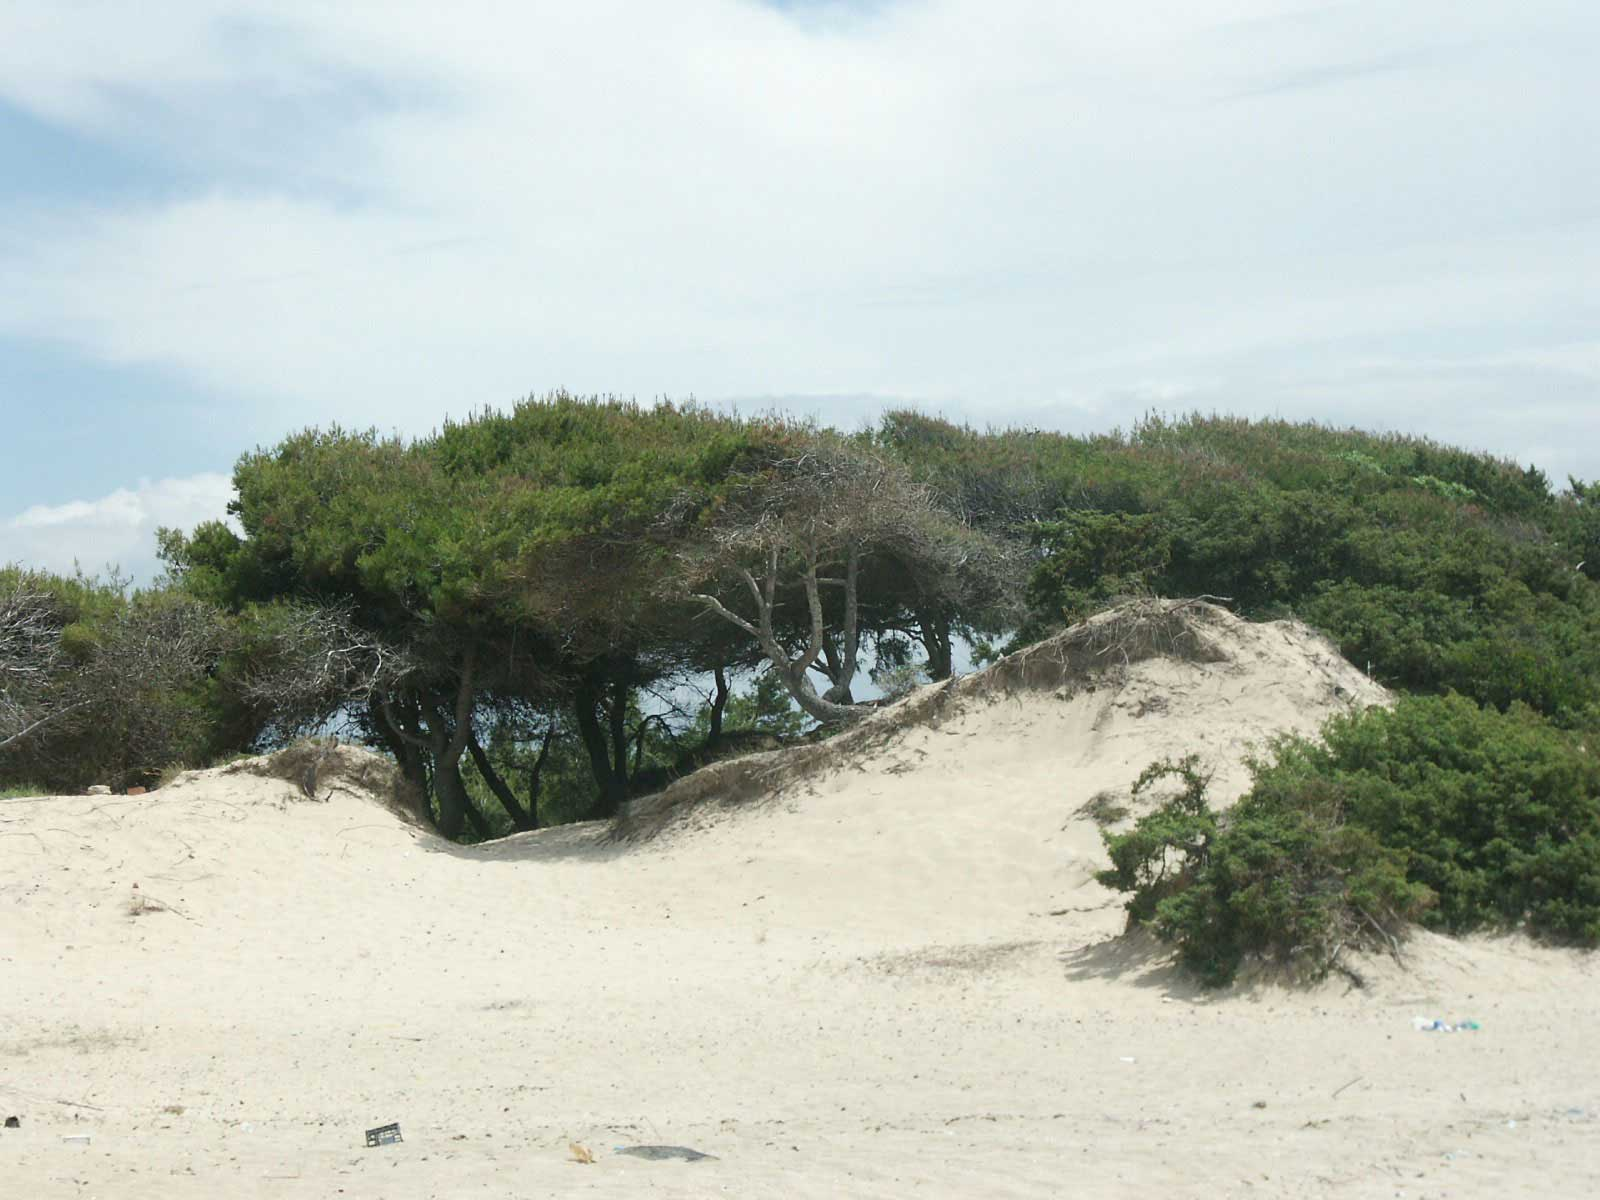 Dune and trees